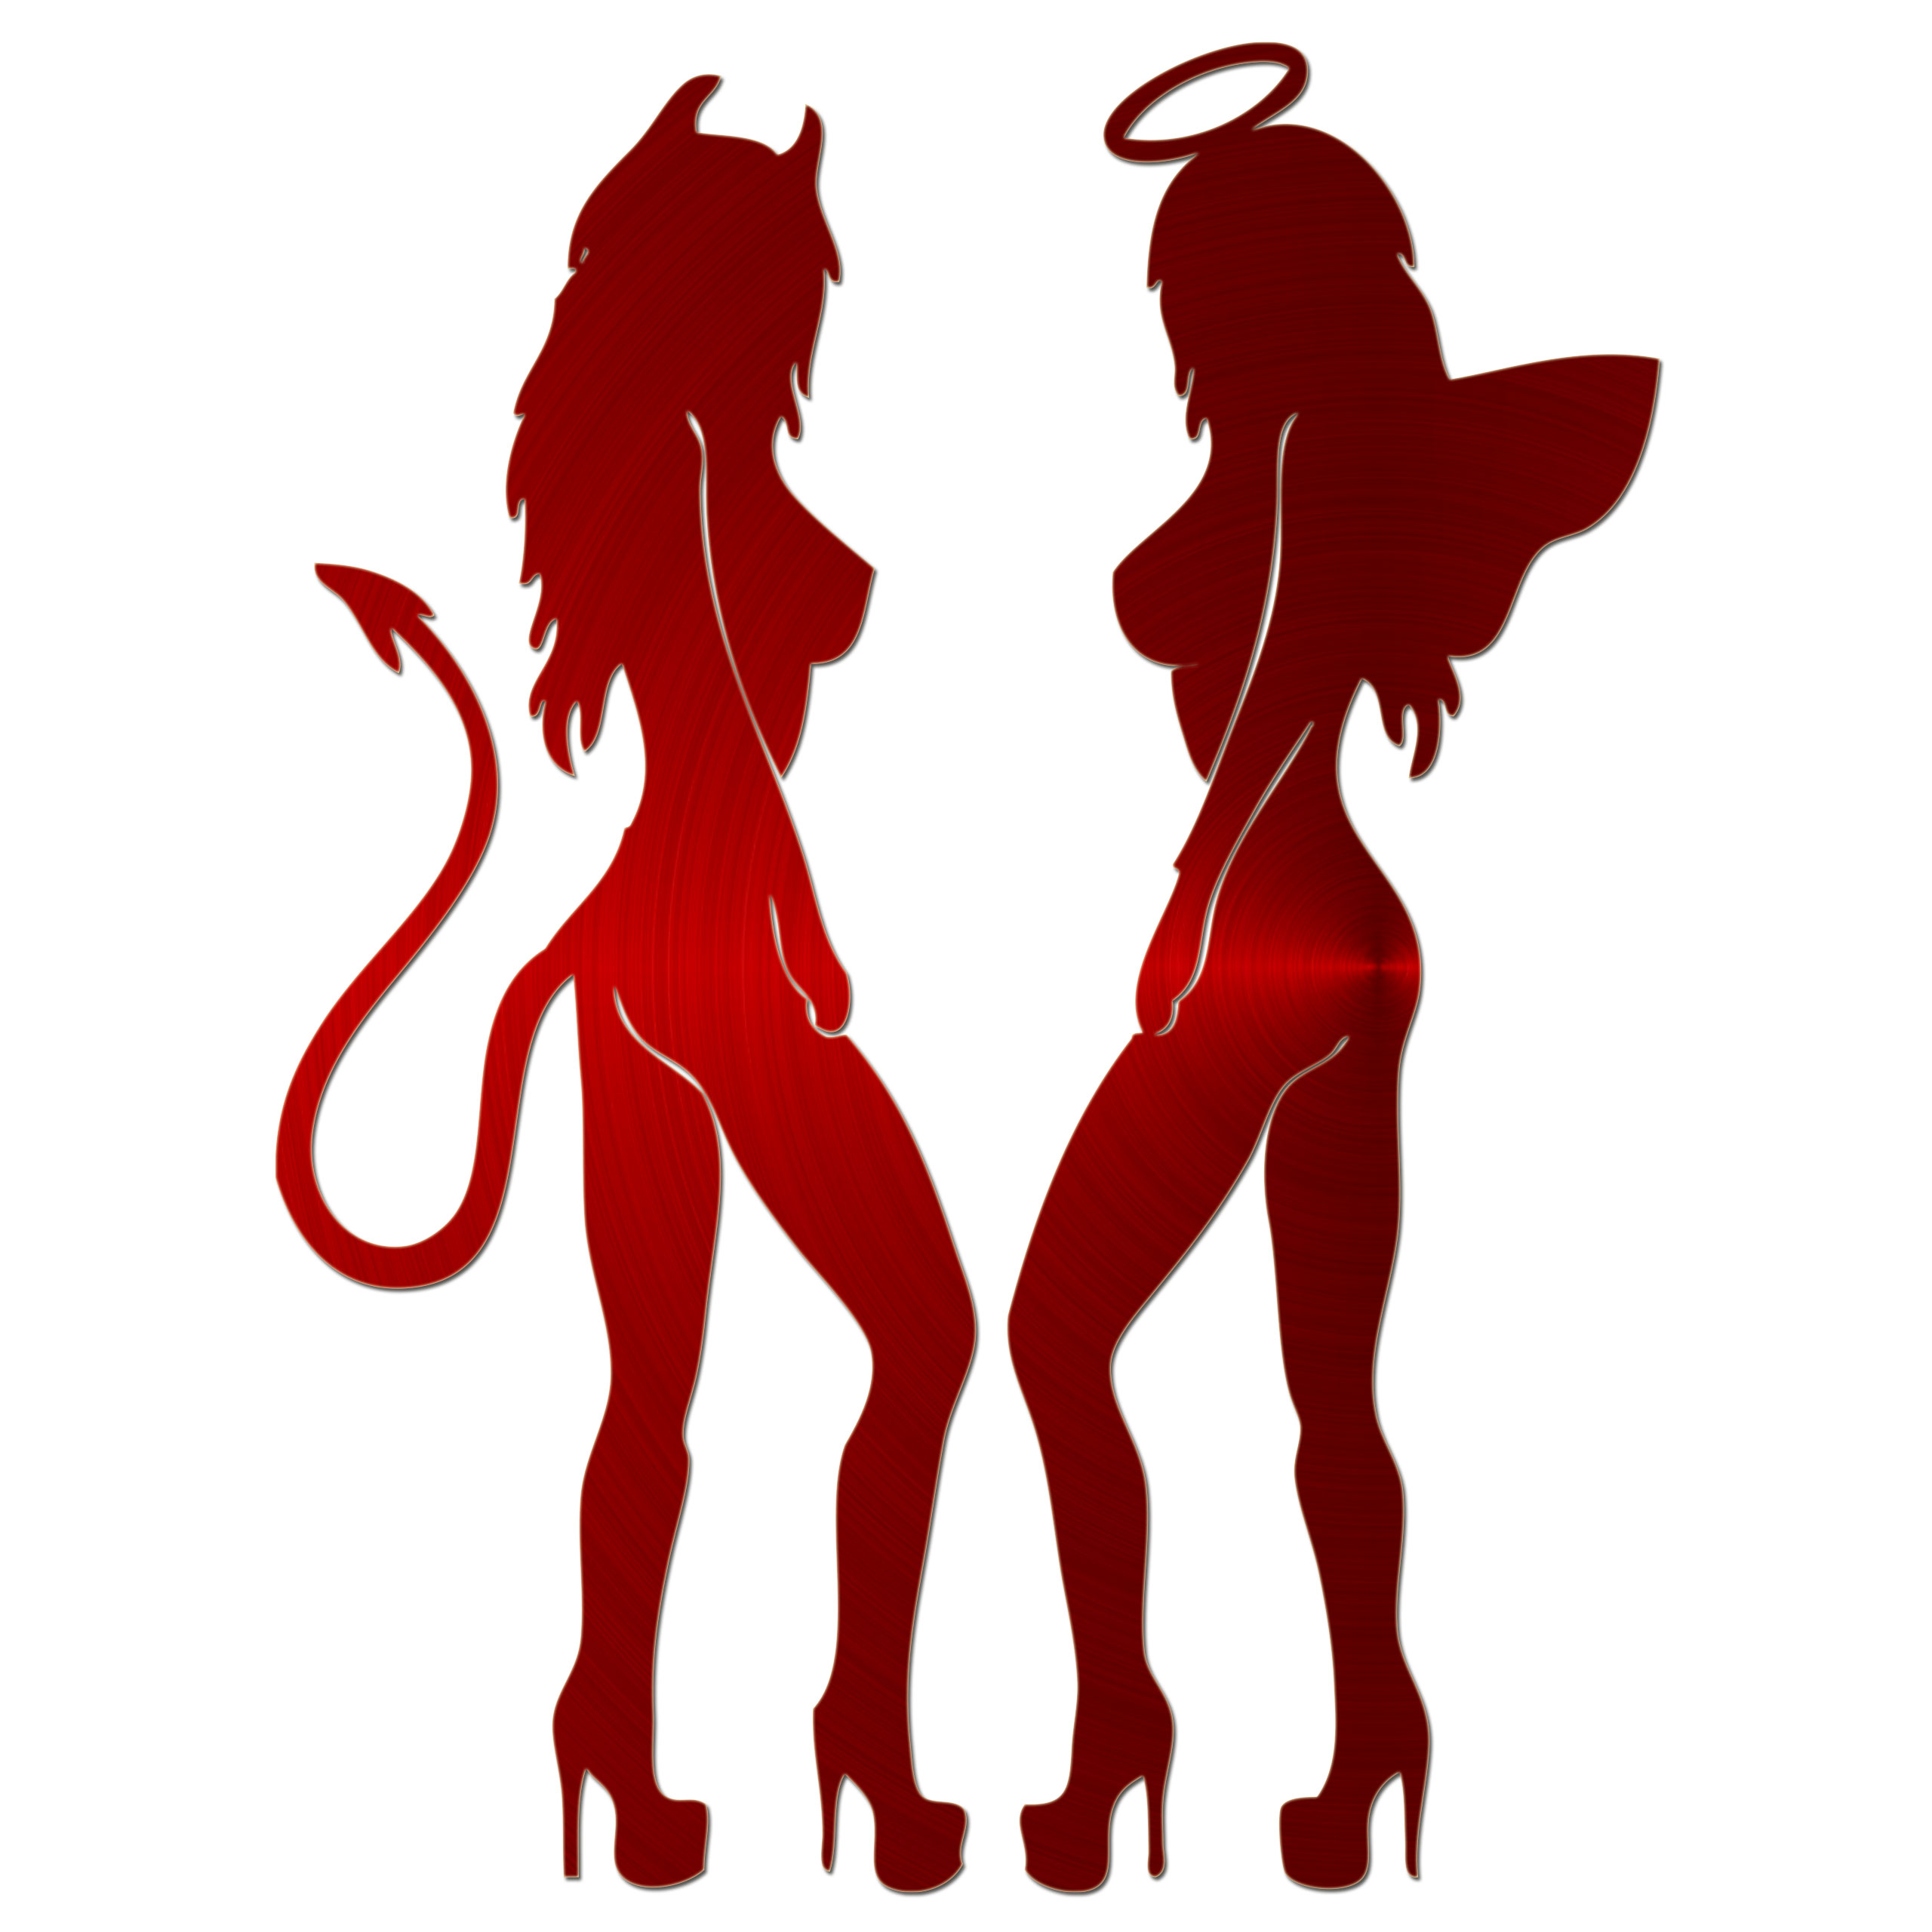 Jasoncarlmorgan jcm graphics sexy angel sexy devil sticker